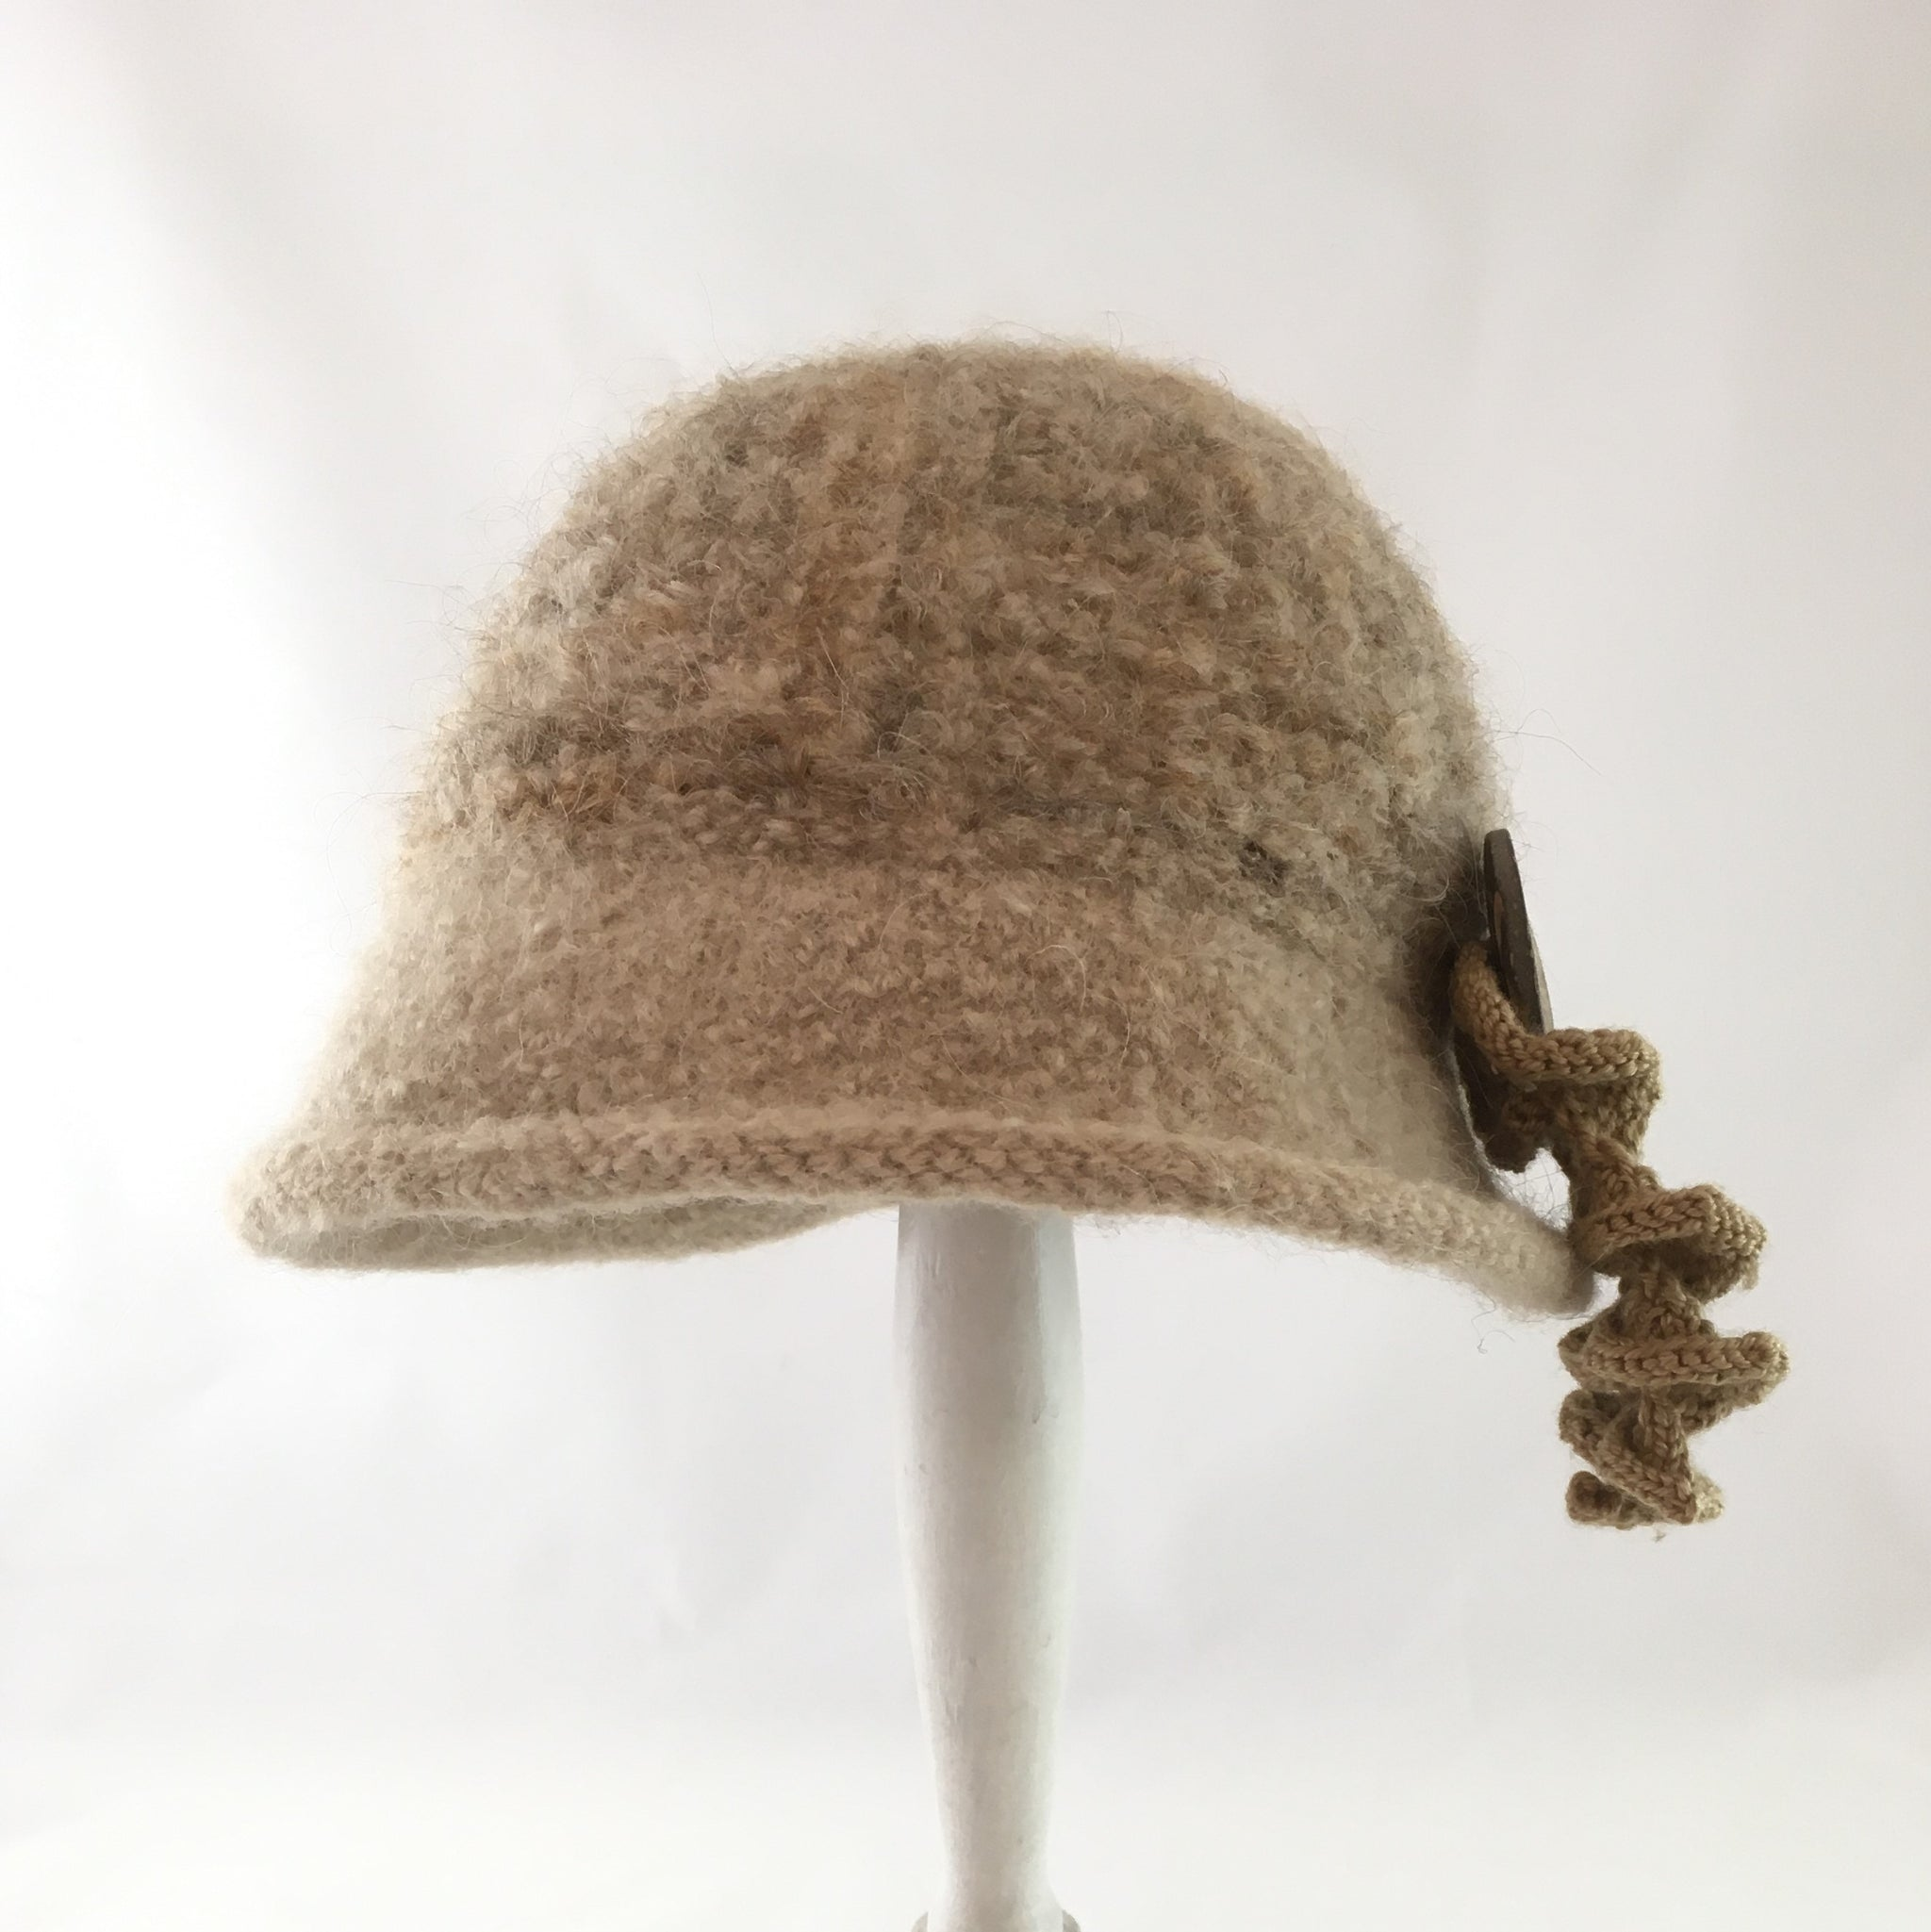 cloche by Helen McGavin Smith